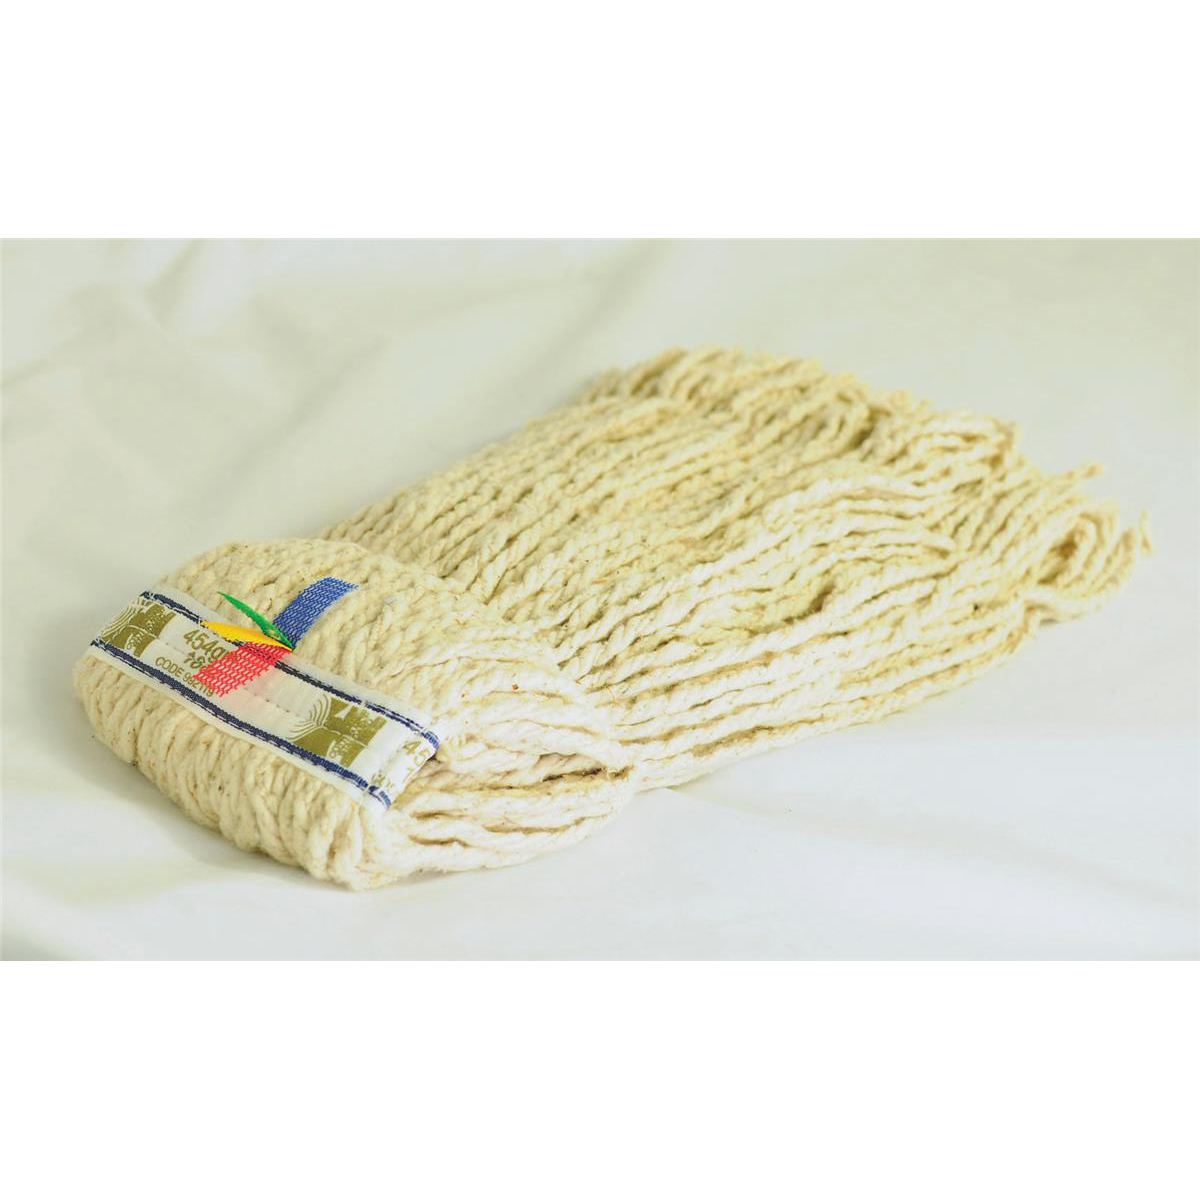 Mops & Buckets Kentucky Mop Head Multifold Hyienic with Assorted Removeable Tabs 16oz/450g